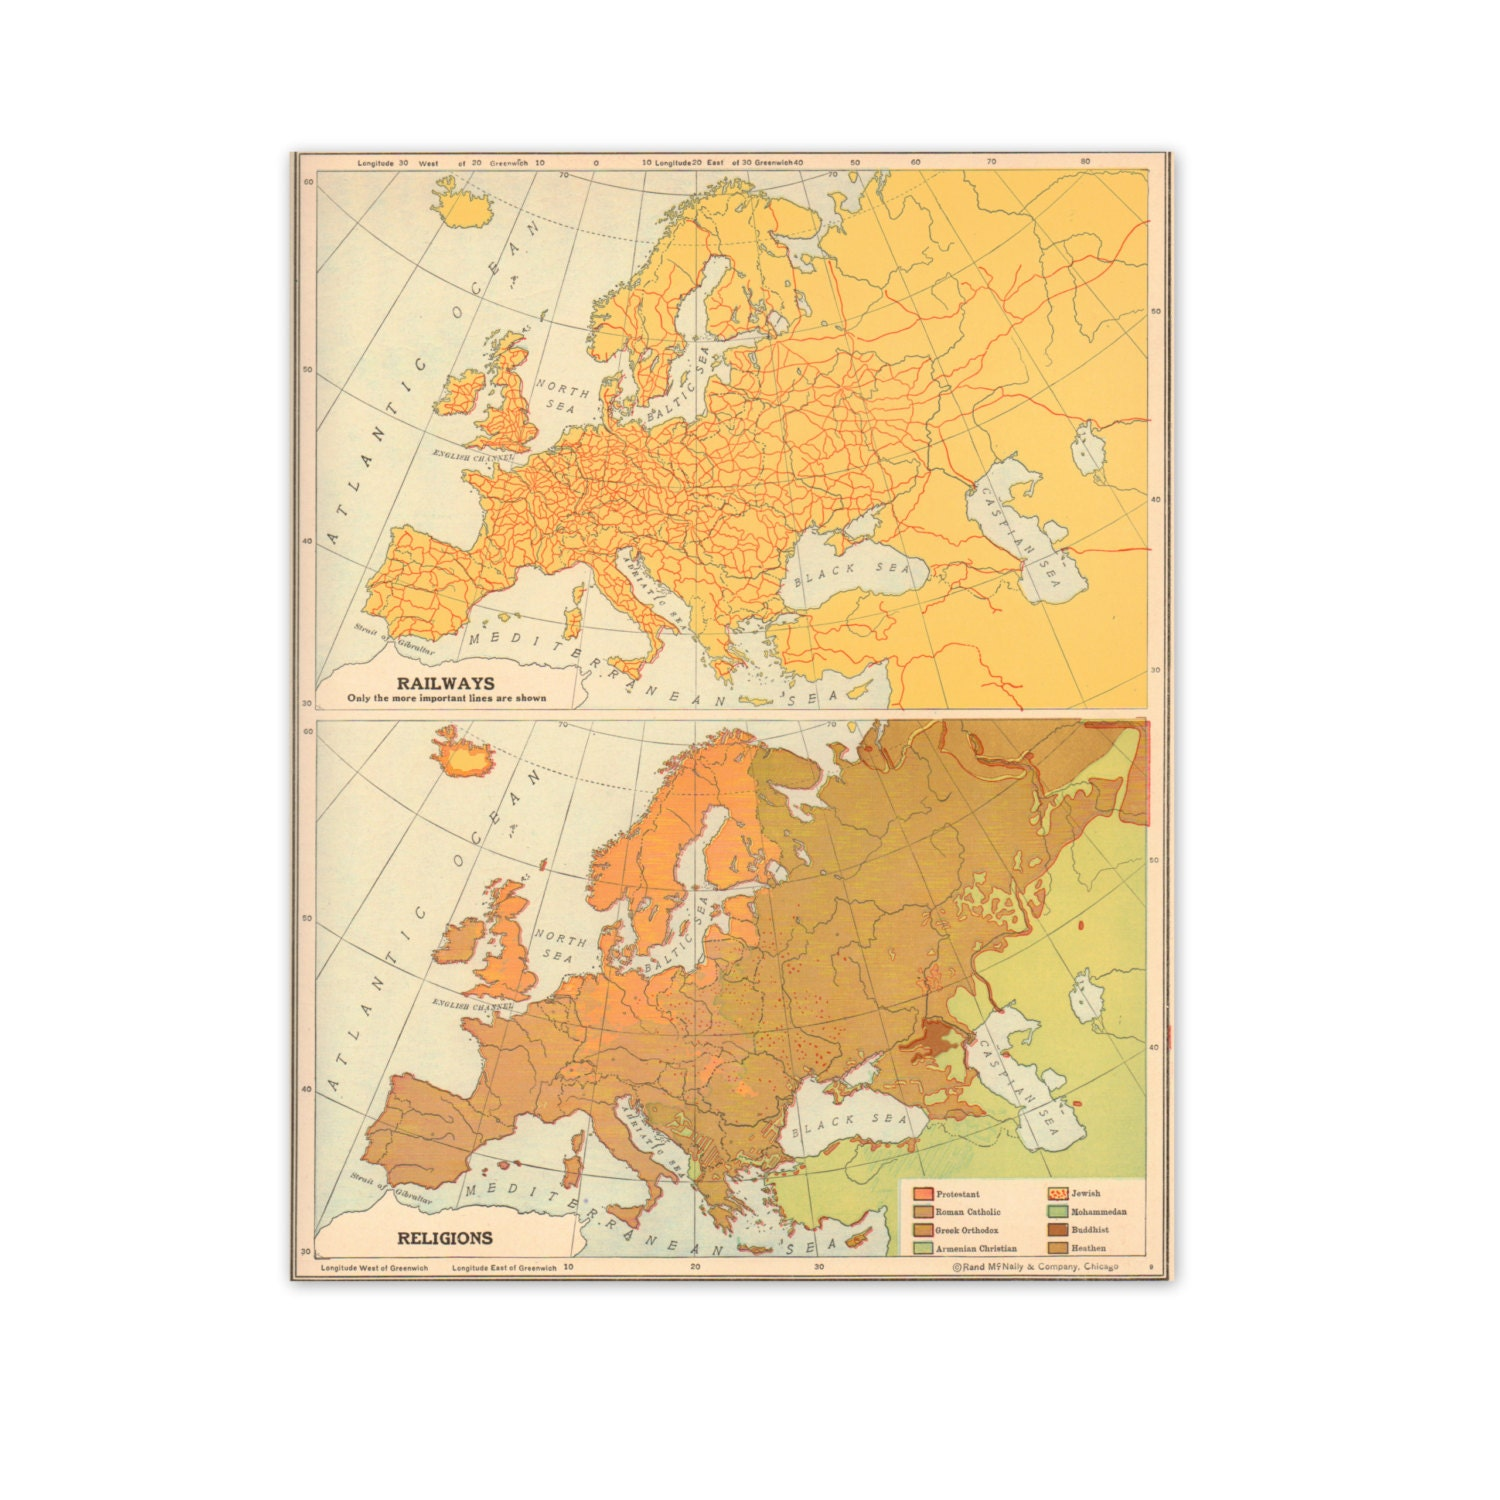 """Vintage 1940s Map of European Railways and Religions. 8"""" x 10"""". Ready to Frame. (No. 806) - GraceArchives"""